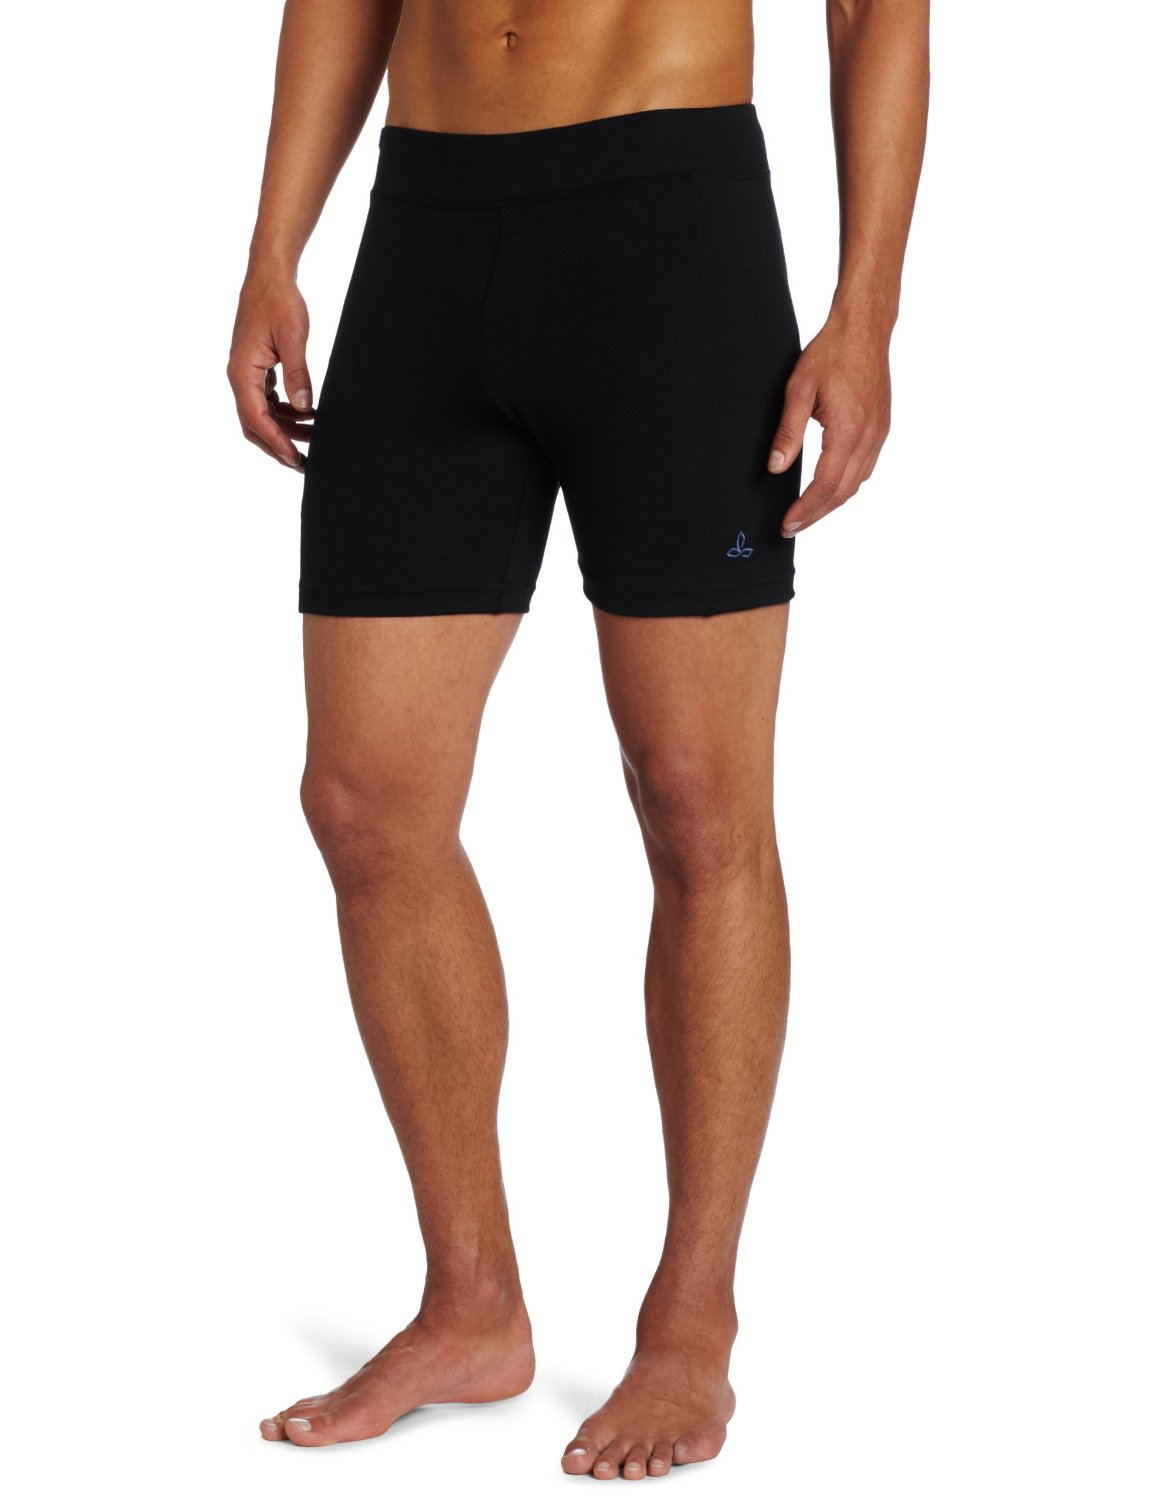 mens yoga shorts amazon.com : prana menu0027s jd short : athletic shorts : sports u0026 outdoors ocexqwi